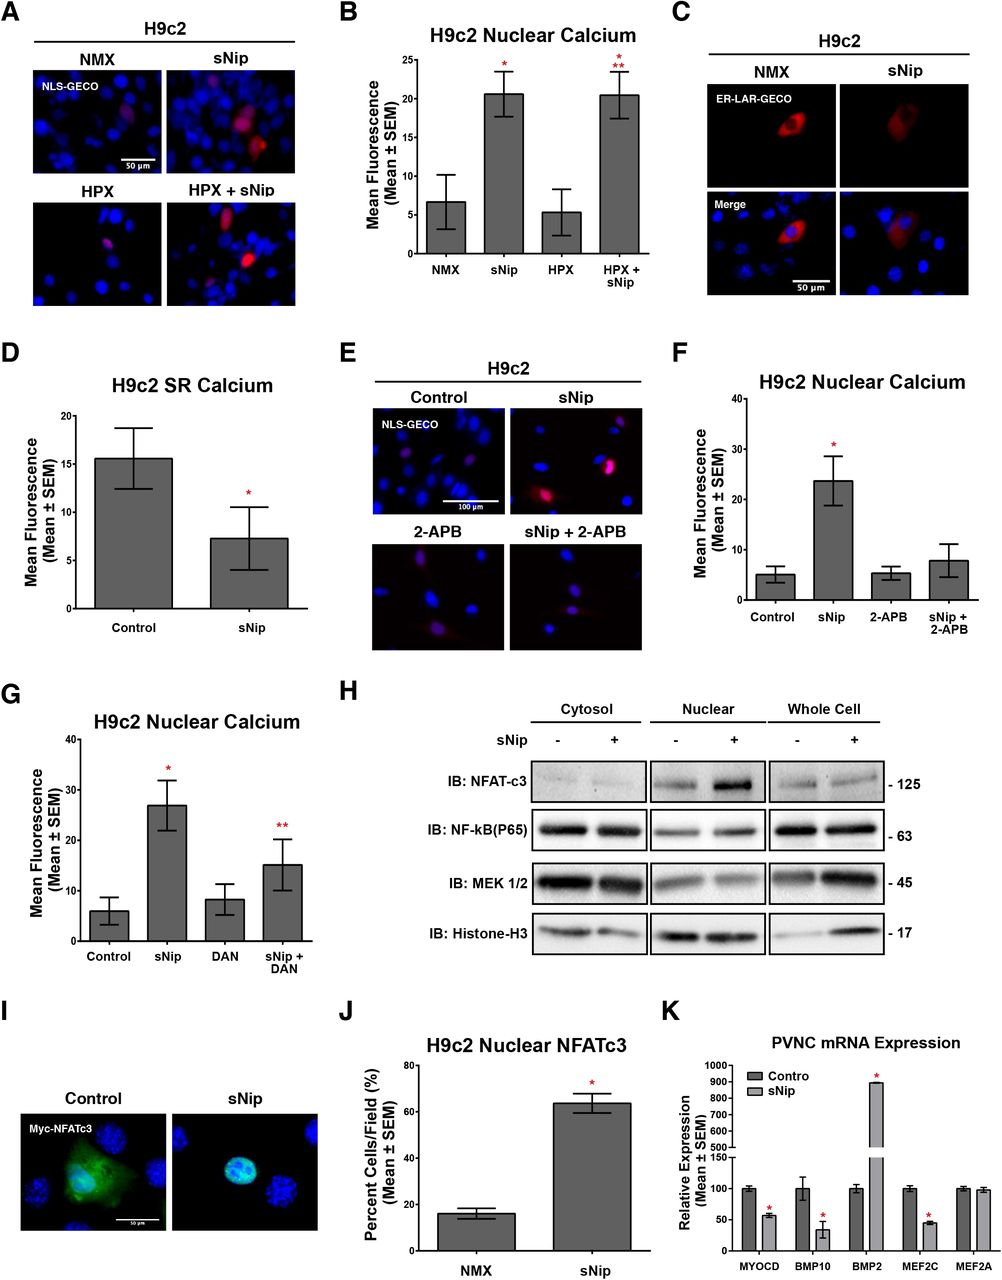 sNip opposes hypoxia-induced neonatal cardiomyocyte proliferation. (A) Immunoblot for sNip expression in H9c2 protein extracts treated with 10 μM misoprostol (Miso) ± 10% O 2 (HPX) for 48 hours. (B) PVNCs treated with pLenti-HA-sNip ± 10% O 2 (HPX) for 48 hours and stained with Tag-it Violet (blue) and calcein-AM (green) and imaged by standard fluorescence microscopy. (C) Quantification of Tag-it Violet positive cells in (B), where the number of blue cells is represented as a percentage (%) of the total number of (green) cells in 10 random fields. (D) Quantification of cells in (B), where cell surface area was calculated for > 80 cells/condition in 10 random fields. (E) H9c2 cells treated as in (A), transfected with scrambled control si-RNA or si-sNip, and stained with Tag-it Violet (blue) and calcein-AM (green) and imaged by standard fluorescence microscopy. (F) Quantification of Tag-it Violet positive cells in (E), where the number of blue cells is represented as a percentage (%) of the total number of (green) cells in 10 random fields. (G) Quantification of H9c2 cells treated with 10% O 2 (HPX) for 48 hours and transfected pcDNA3 (control) or HA-sNip. Peredox-mCherry was used to indicate cytosolic NAD content in all conditions. The ratio of green fluorescence (NADH) to red fluorescent signal (NAD + ) was measured in > 15 random fields across 3 independent experiments. (H) Ratiometric images of H9c2's treated as in (G). Laconic was used to indicate cytosolic lactate content. Cells were imaged by FRET-based microscopy. (I) Quantification of cells in (H), where the FRET-YFP (lactate) signal was divided by the YFP (unbound biosensor) signal in 15 random fields across 3 independent experiments. All data are represented as mean ± S.E.M. *P